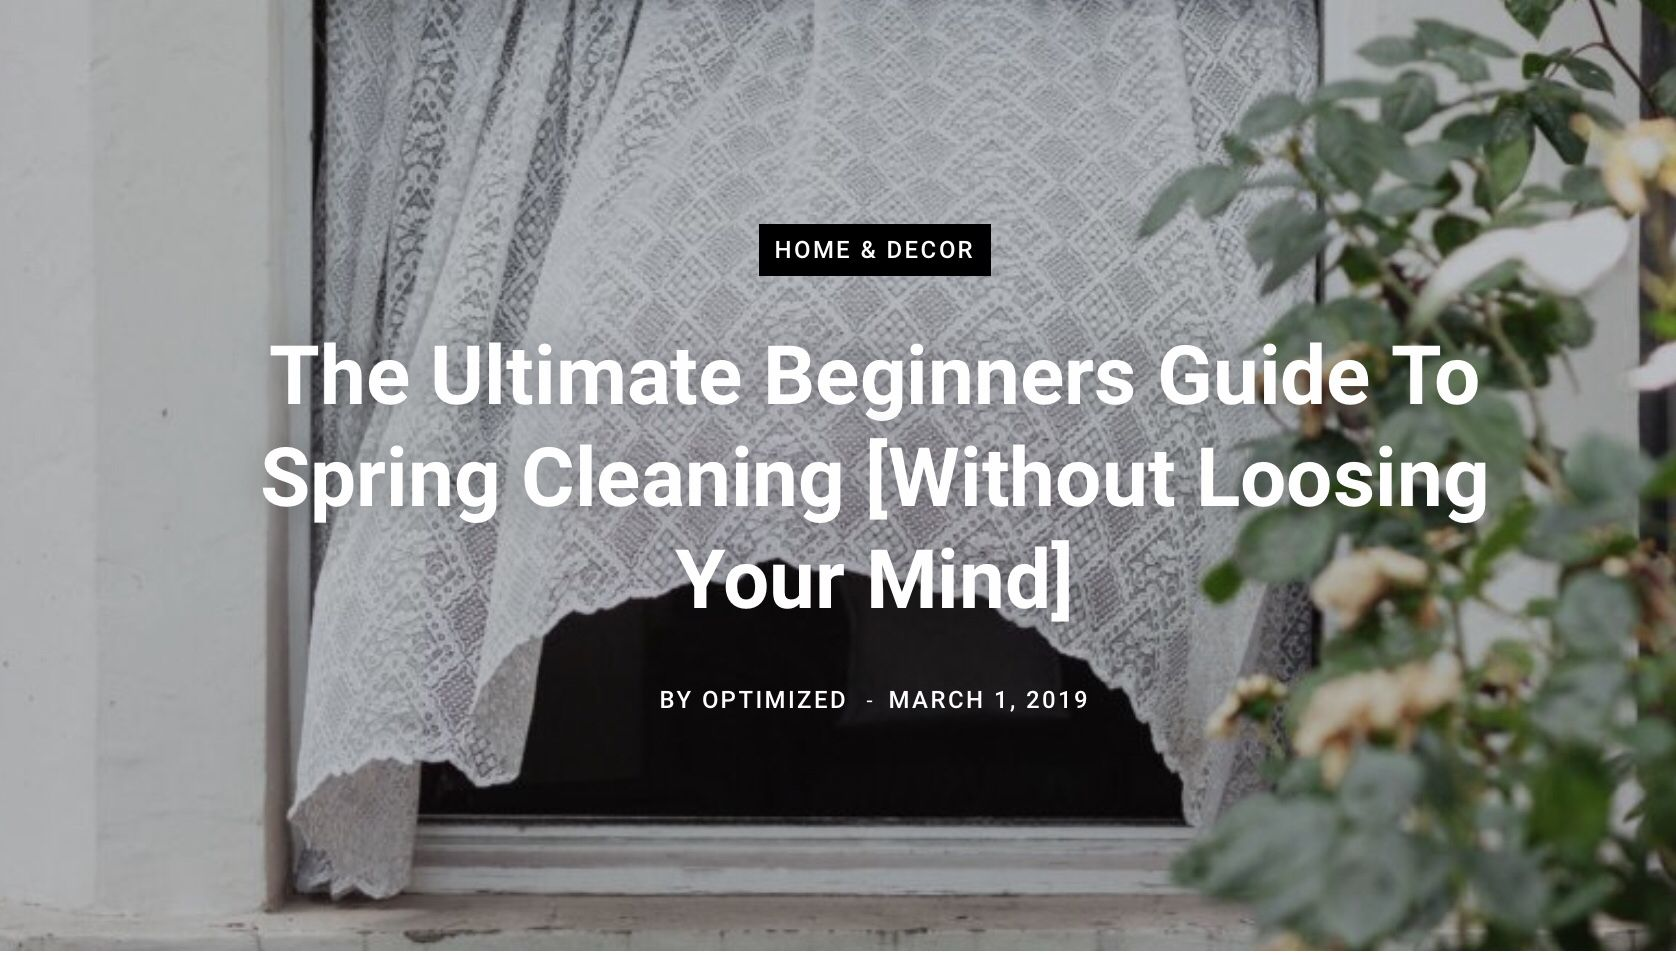 The Ultimate Beginners Guide To Spring Cleaning [Without